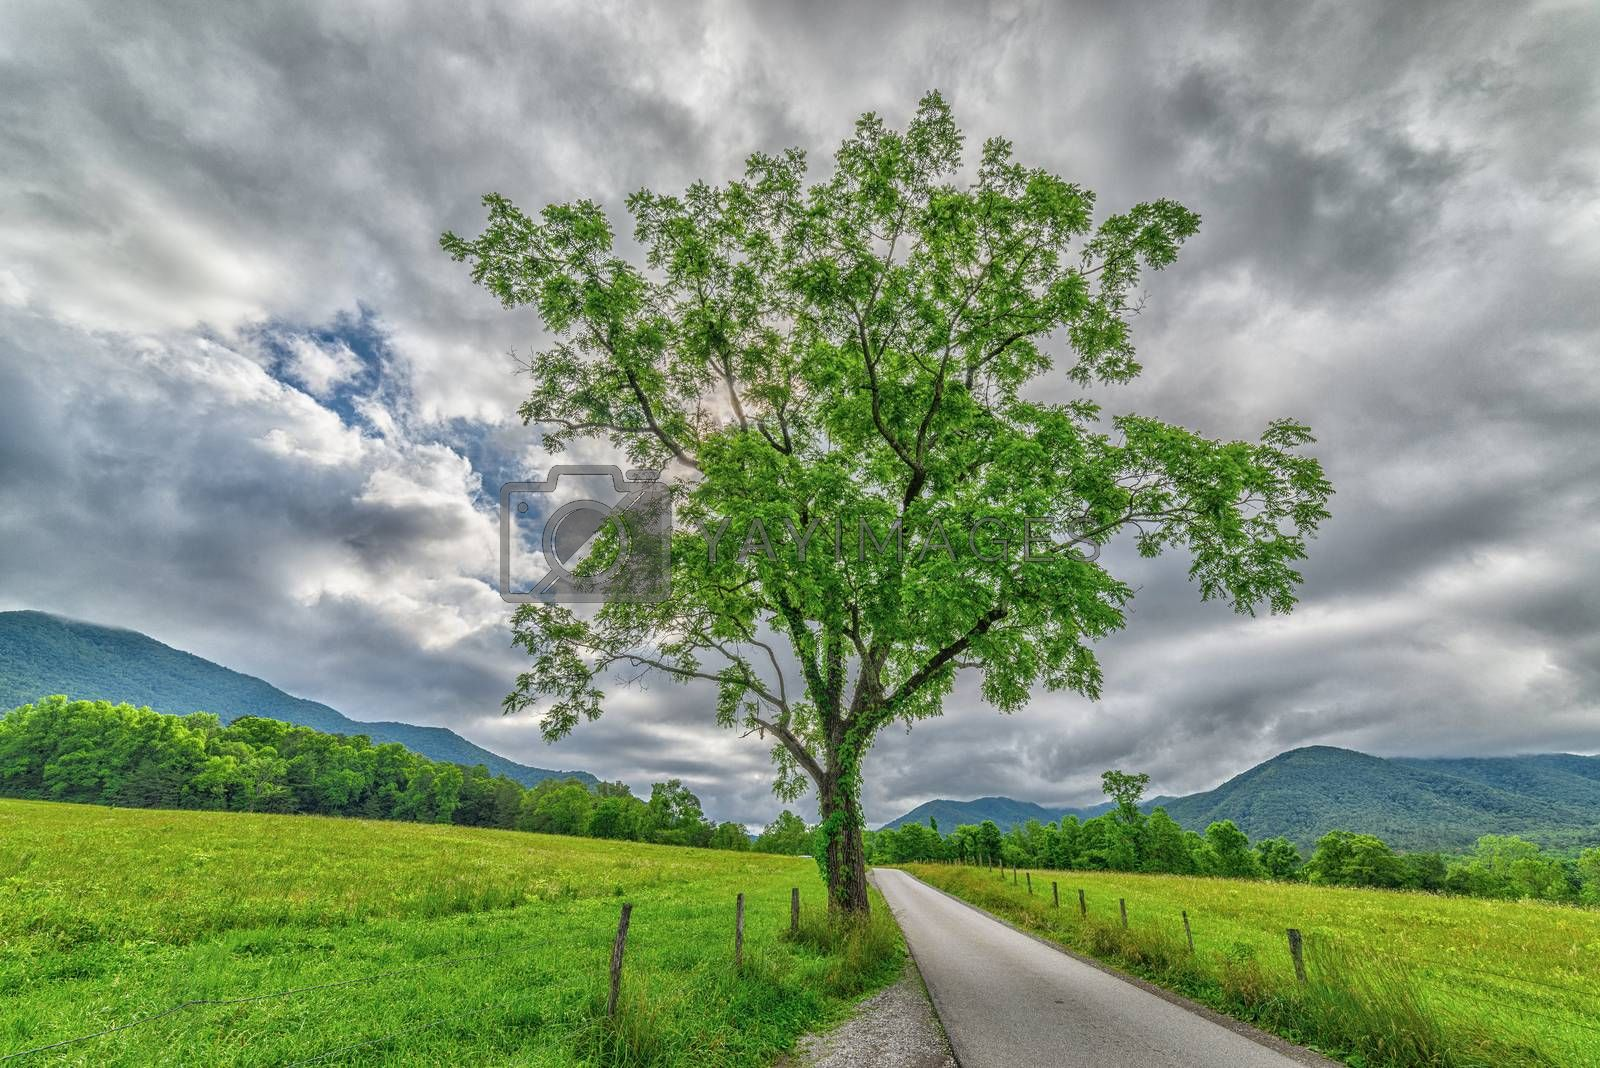 A beautiful horizontal shot of a Cades Cove tree in Springtime with a cloudy sky and mountains in the background.